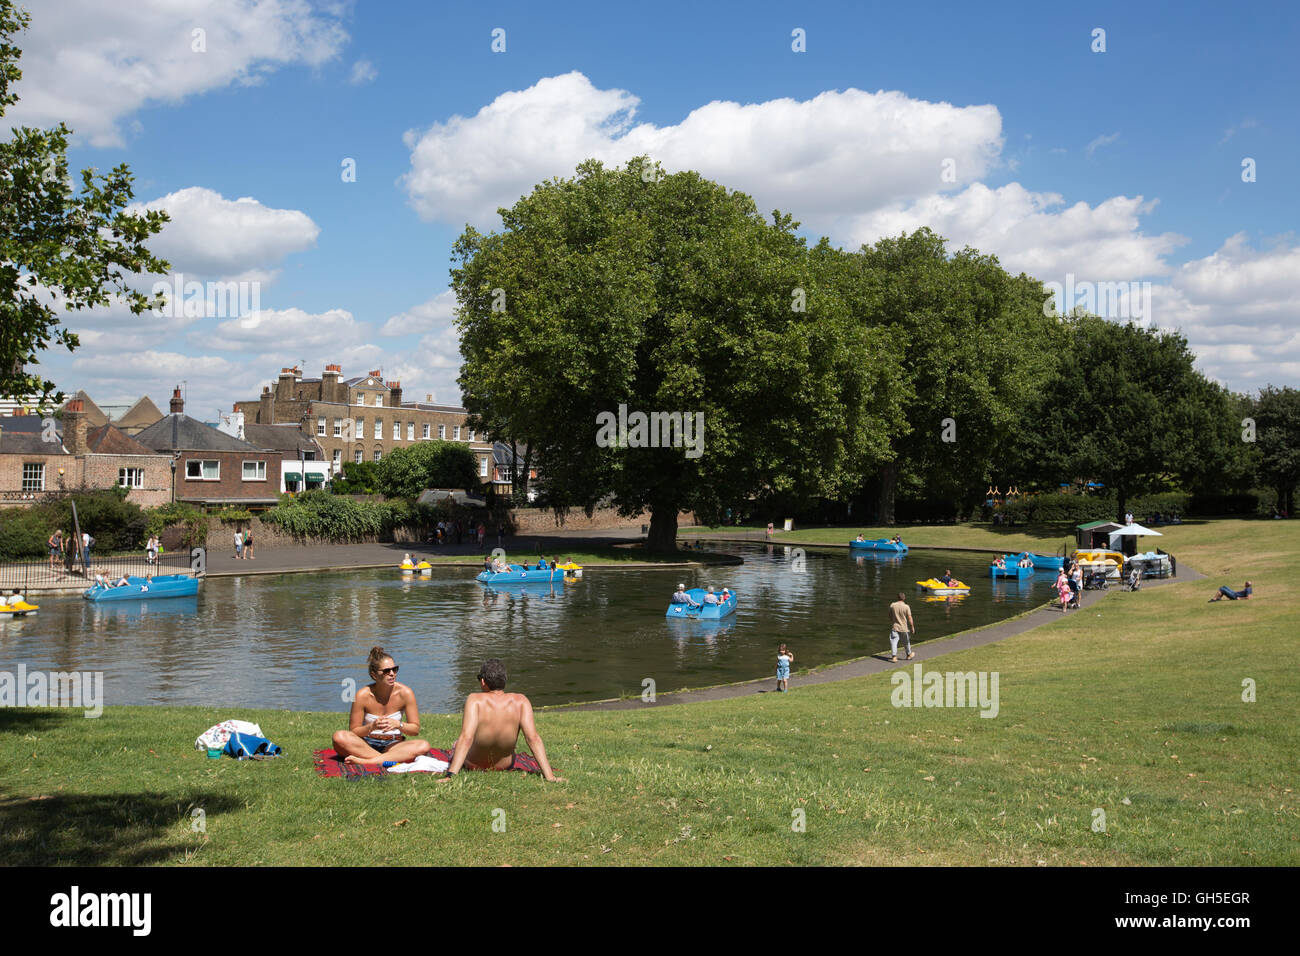 People enjoying the summer warm weather in Greenwich Park, south-east London, England, UK - Stock Image